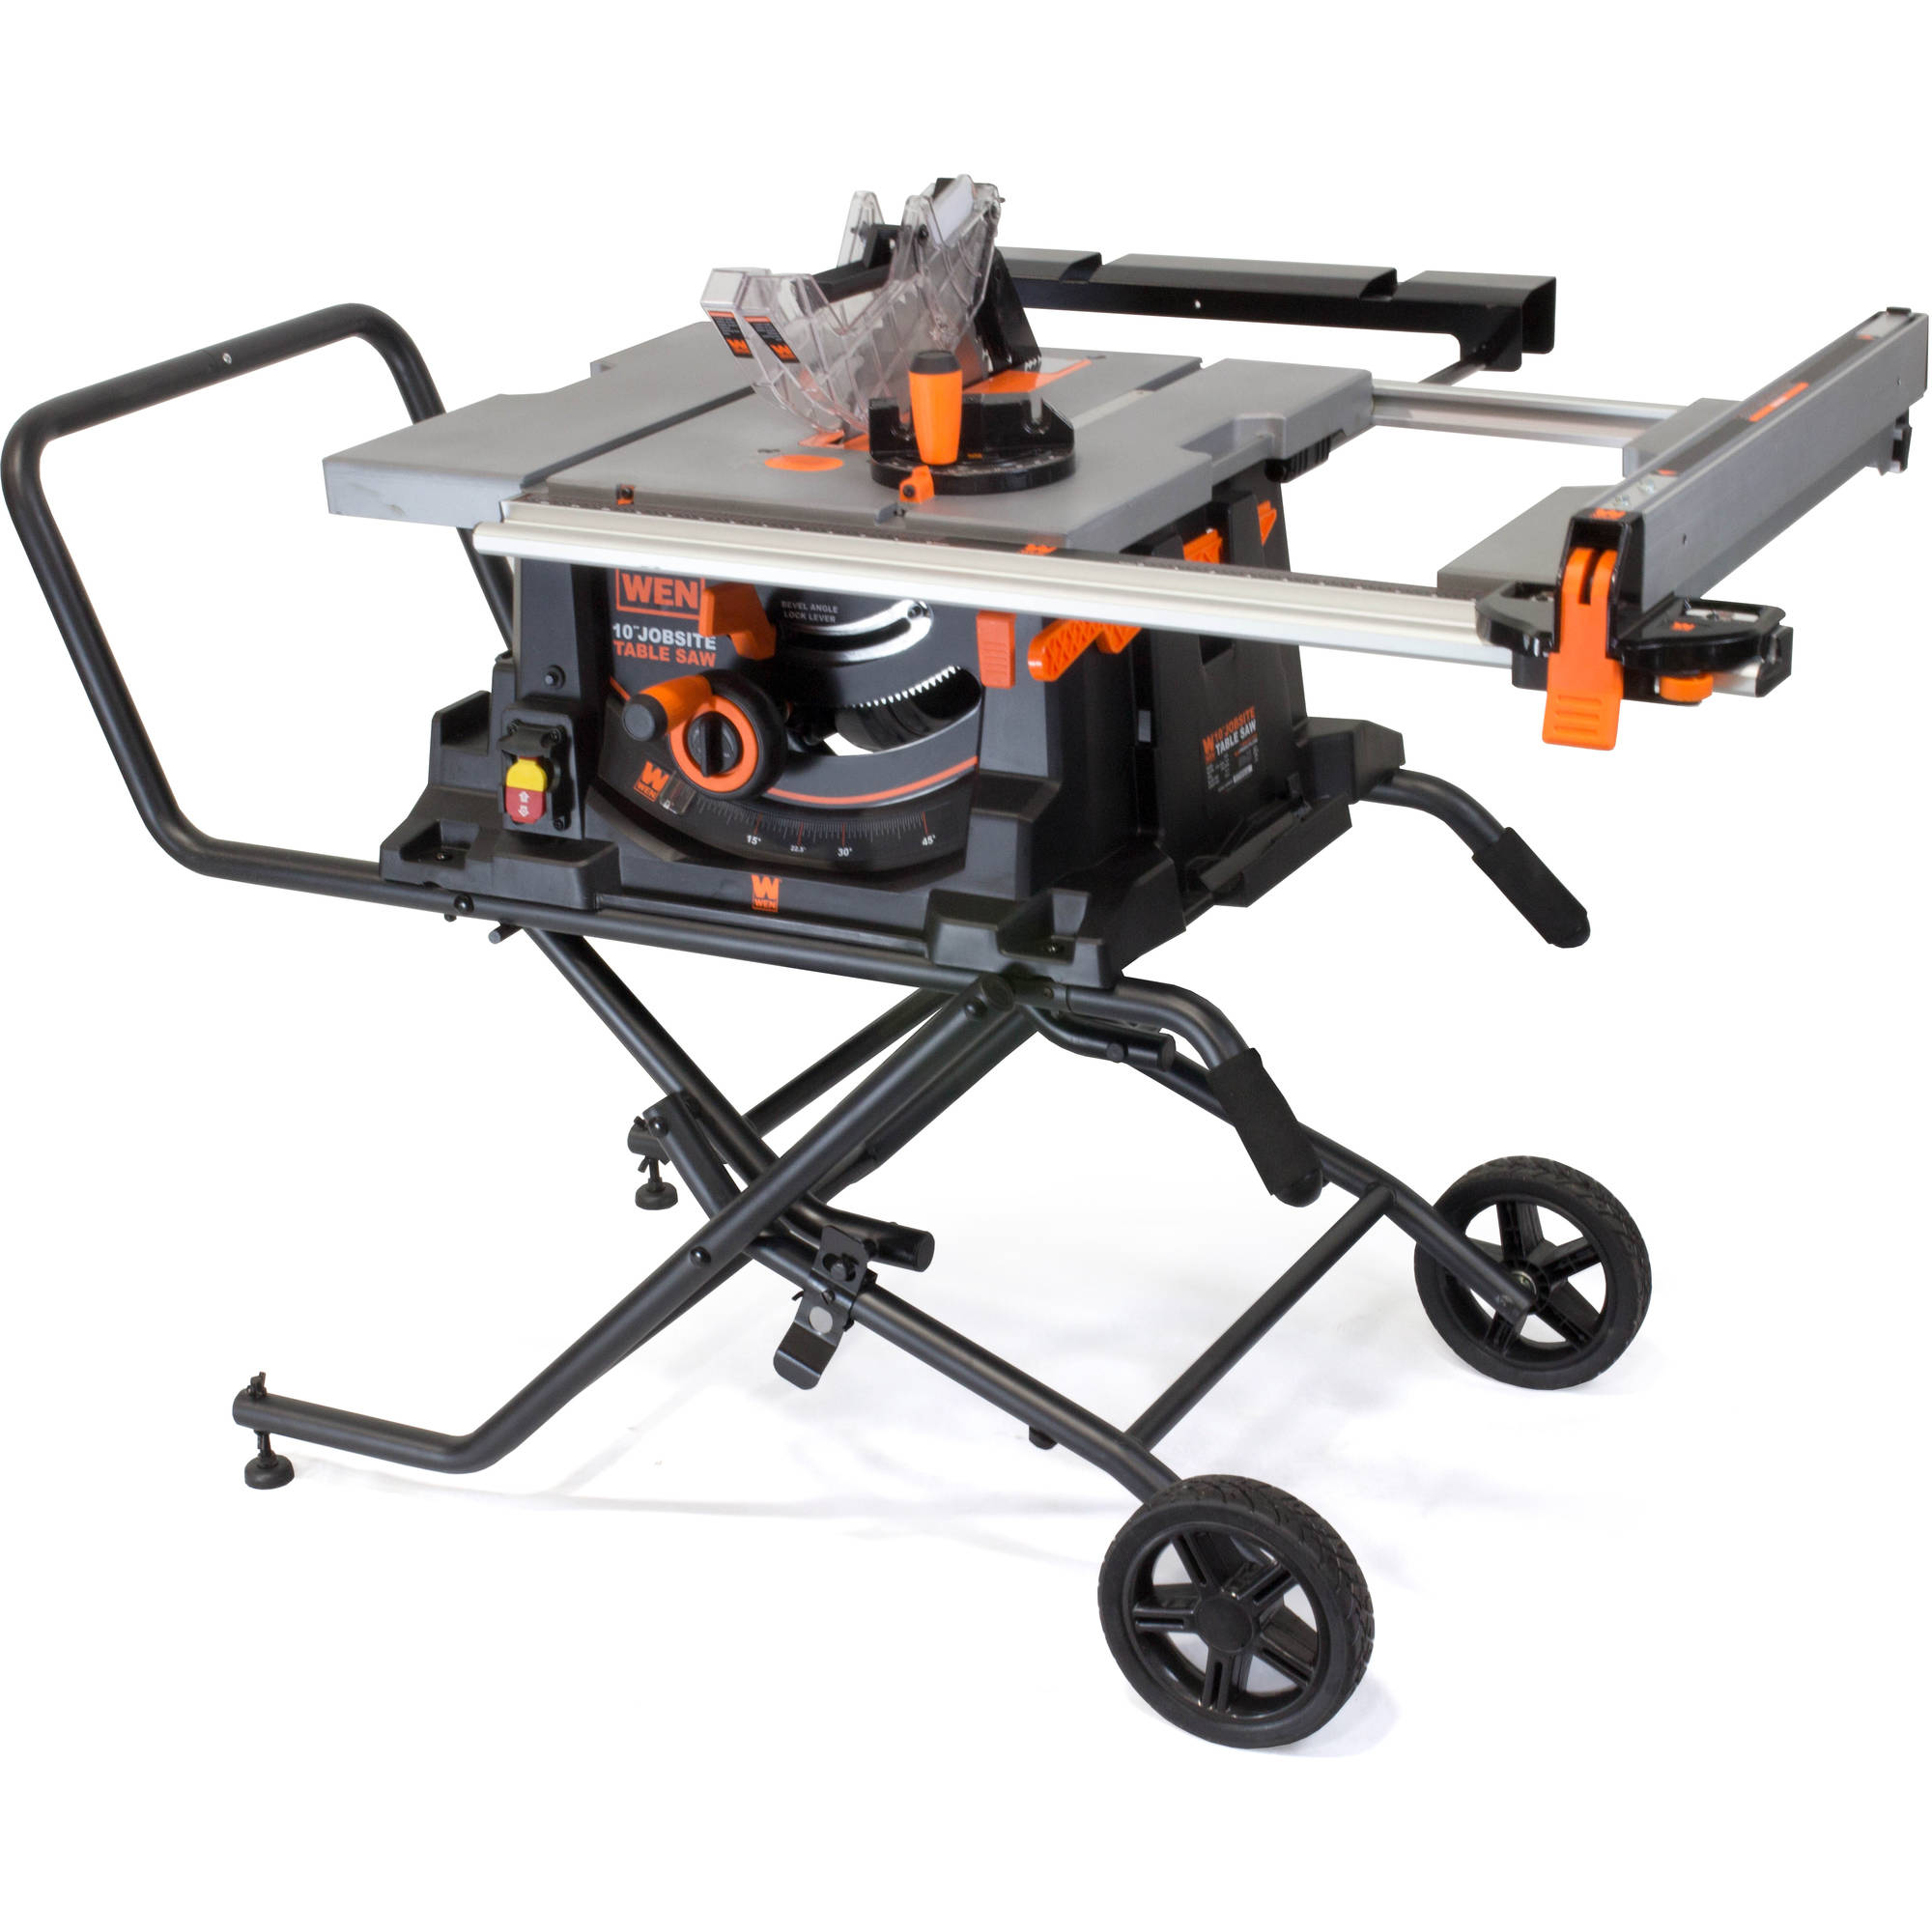 WEN 10-Inch Jobsite Table Saw With Rolling Stand